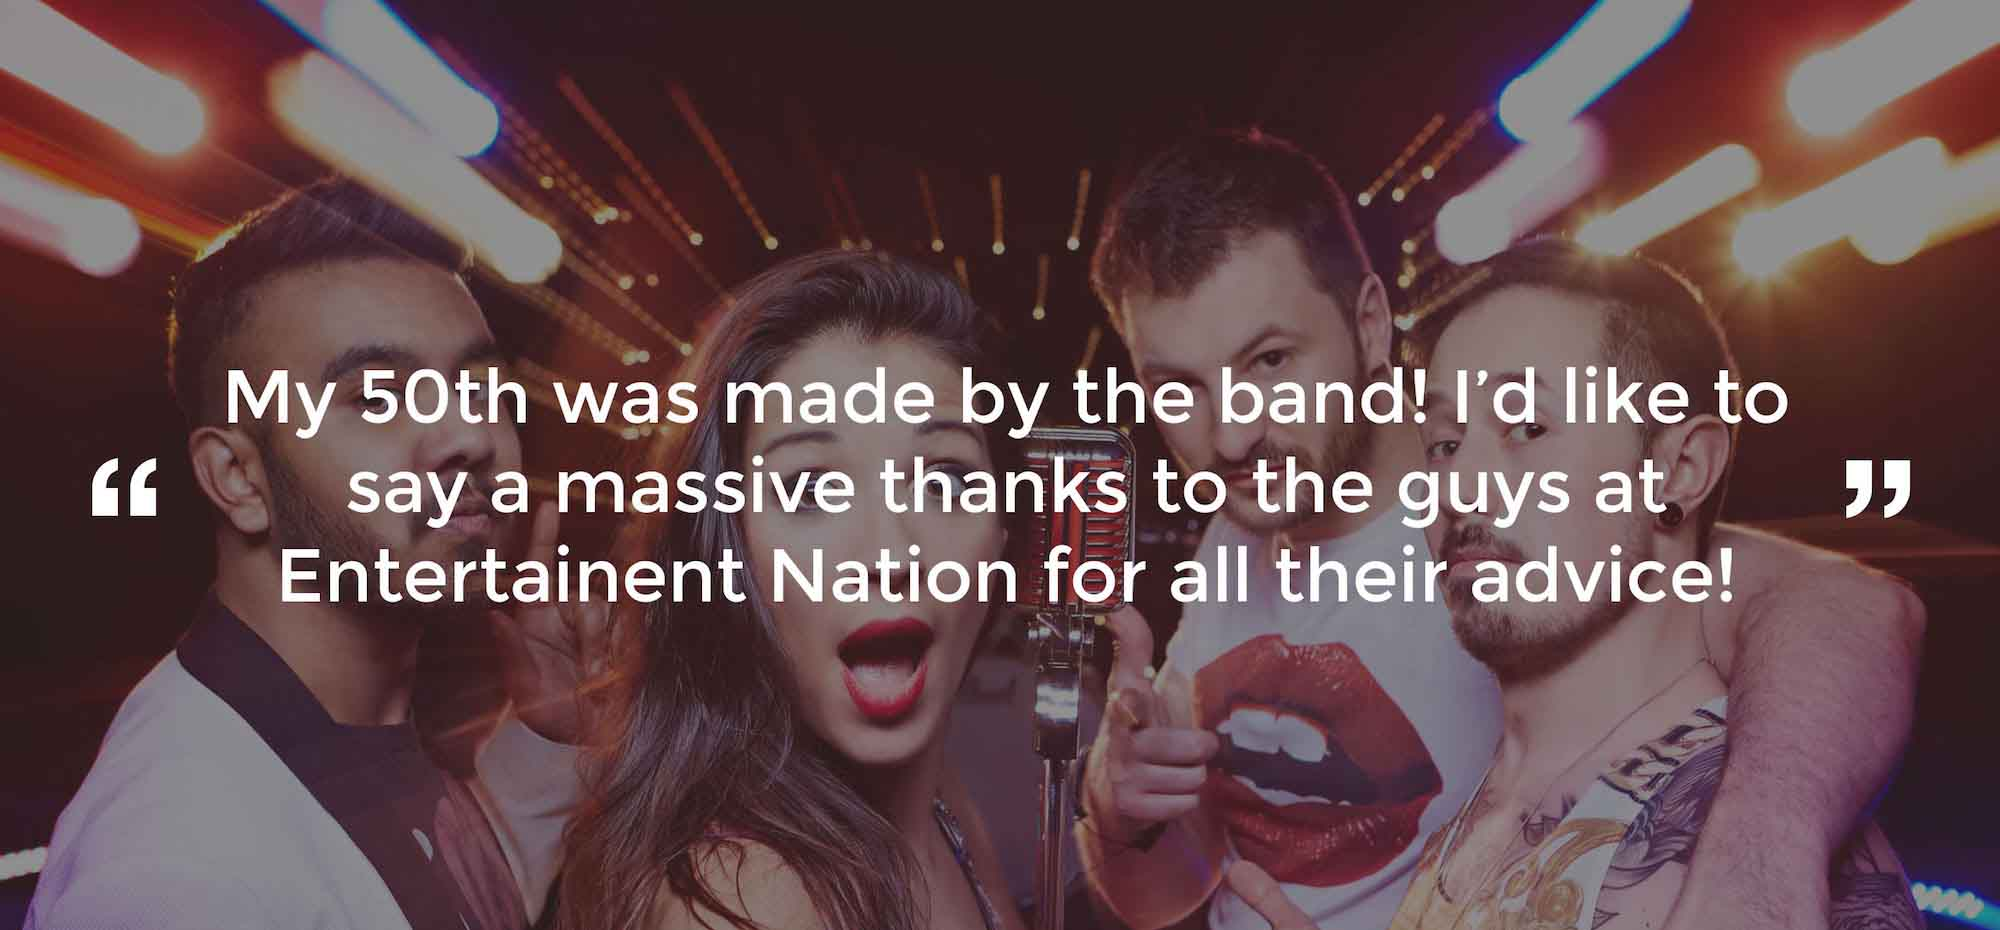 Client Review of a Party Band Warwickshire